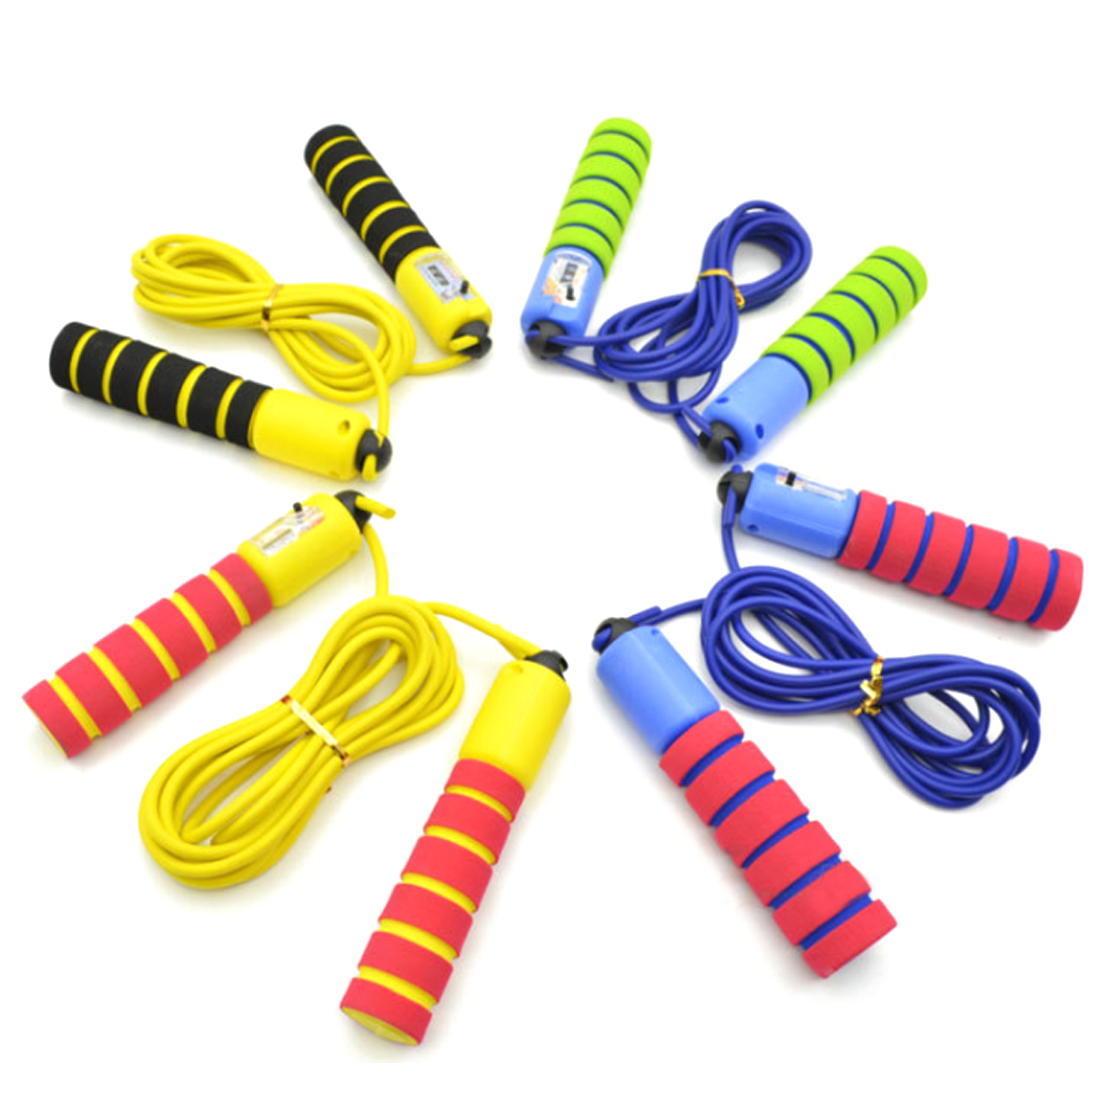 NFSTRIKE jump rope kids Sports Toys For Children Exercise Counting Jump Rope Safety Soft Sports Skipping Ropes Training Tool skipping rope